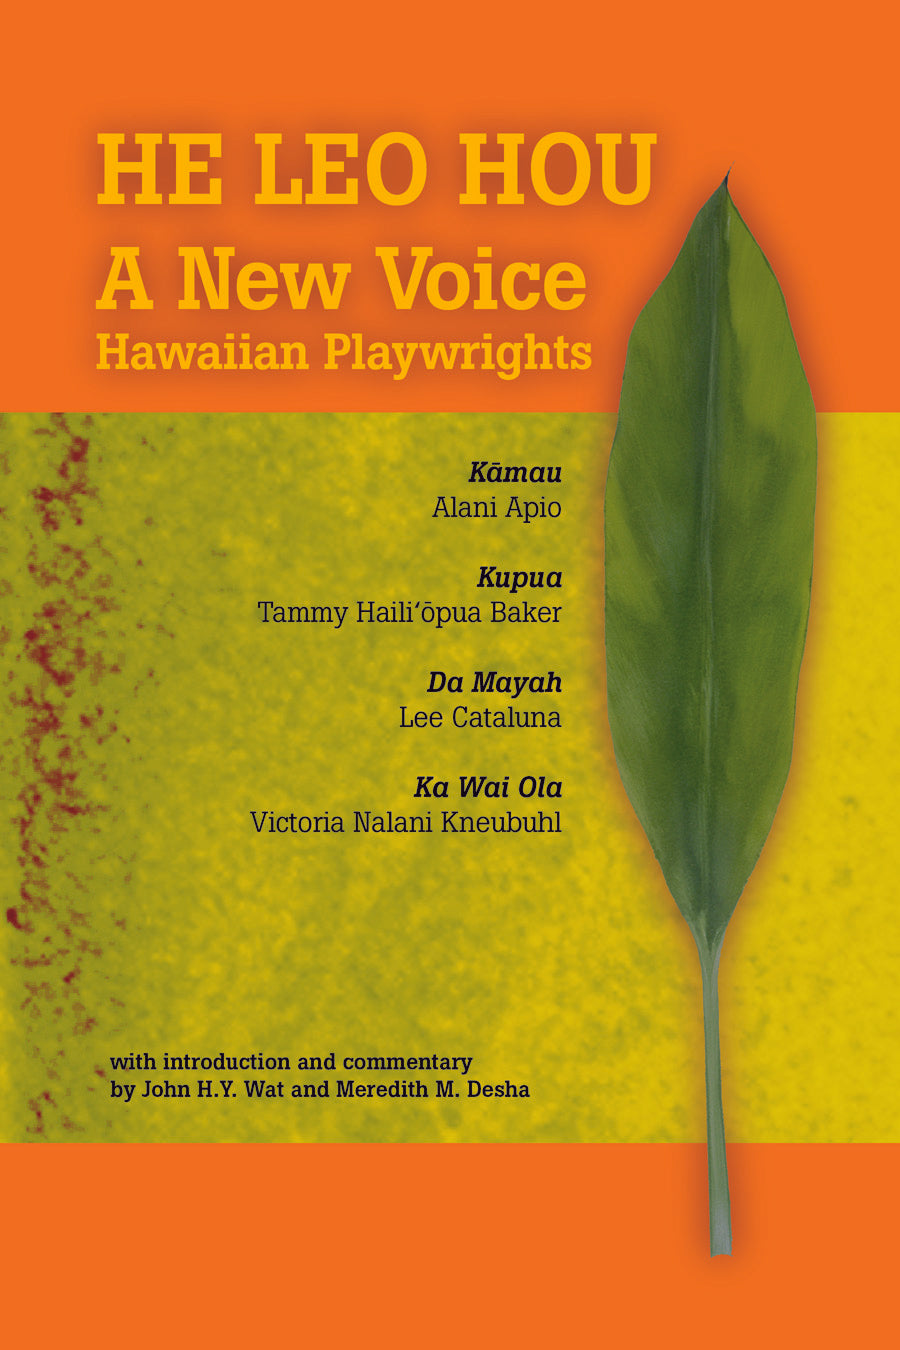 He Leo Hou: A New Voice Hawaiian Playwrights